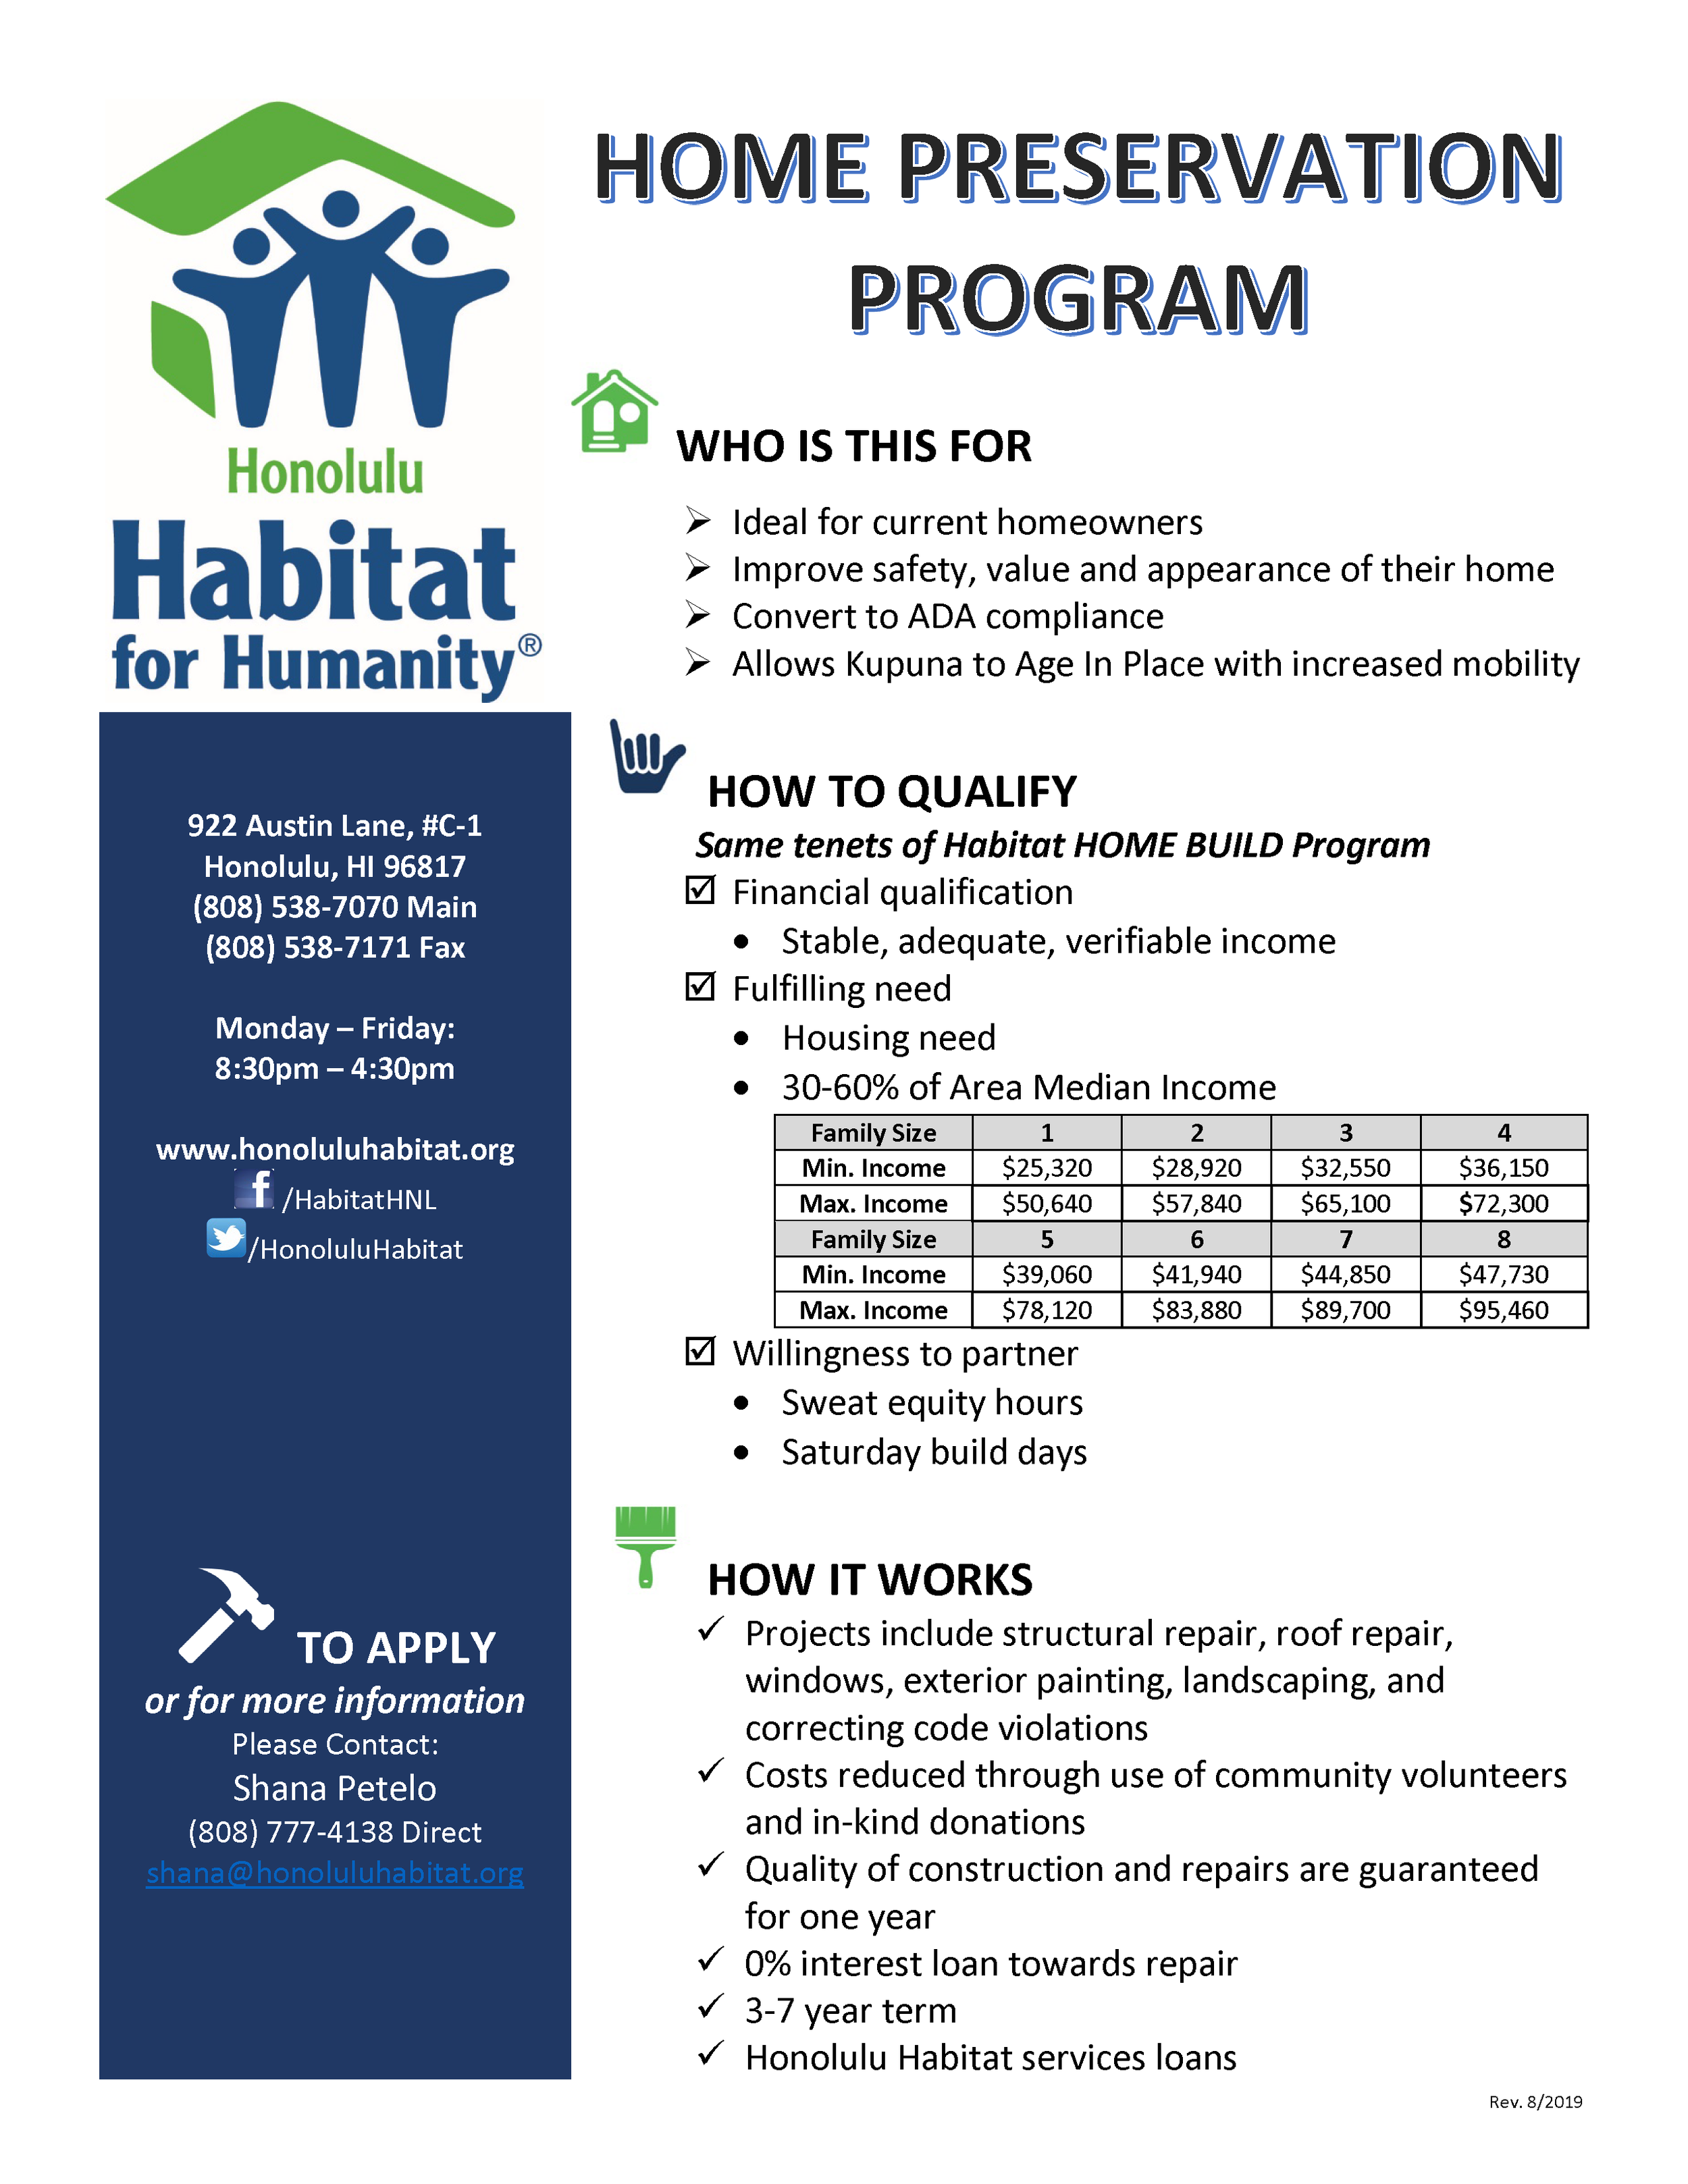 HOME PRESERVATION One Pager with scale 2016.rev.png